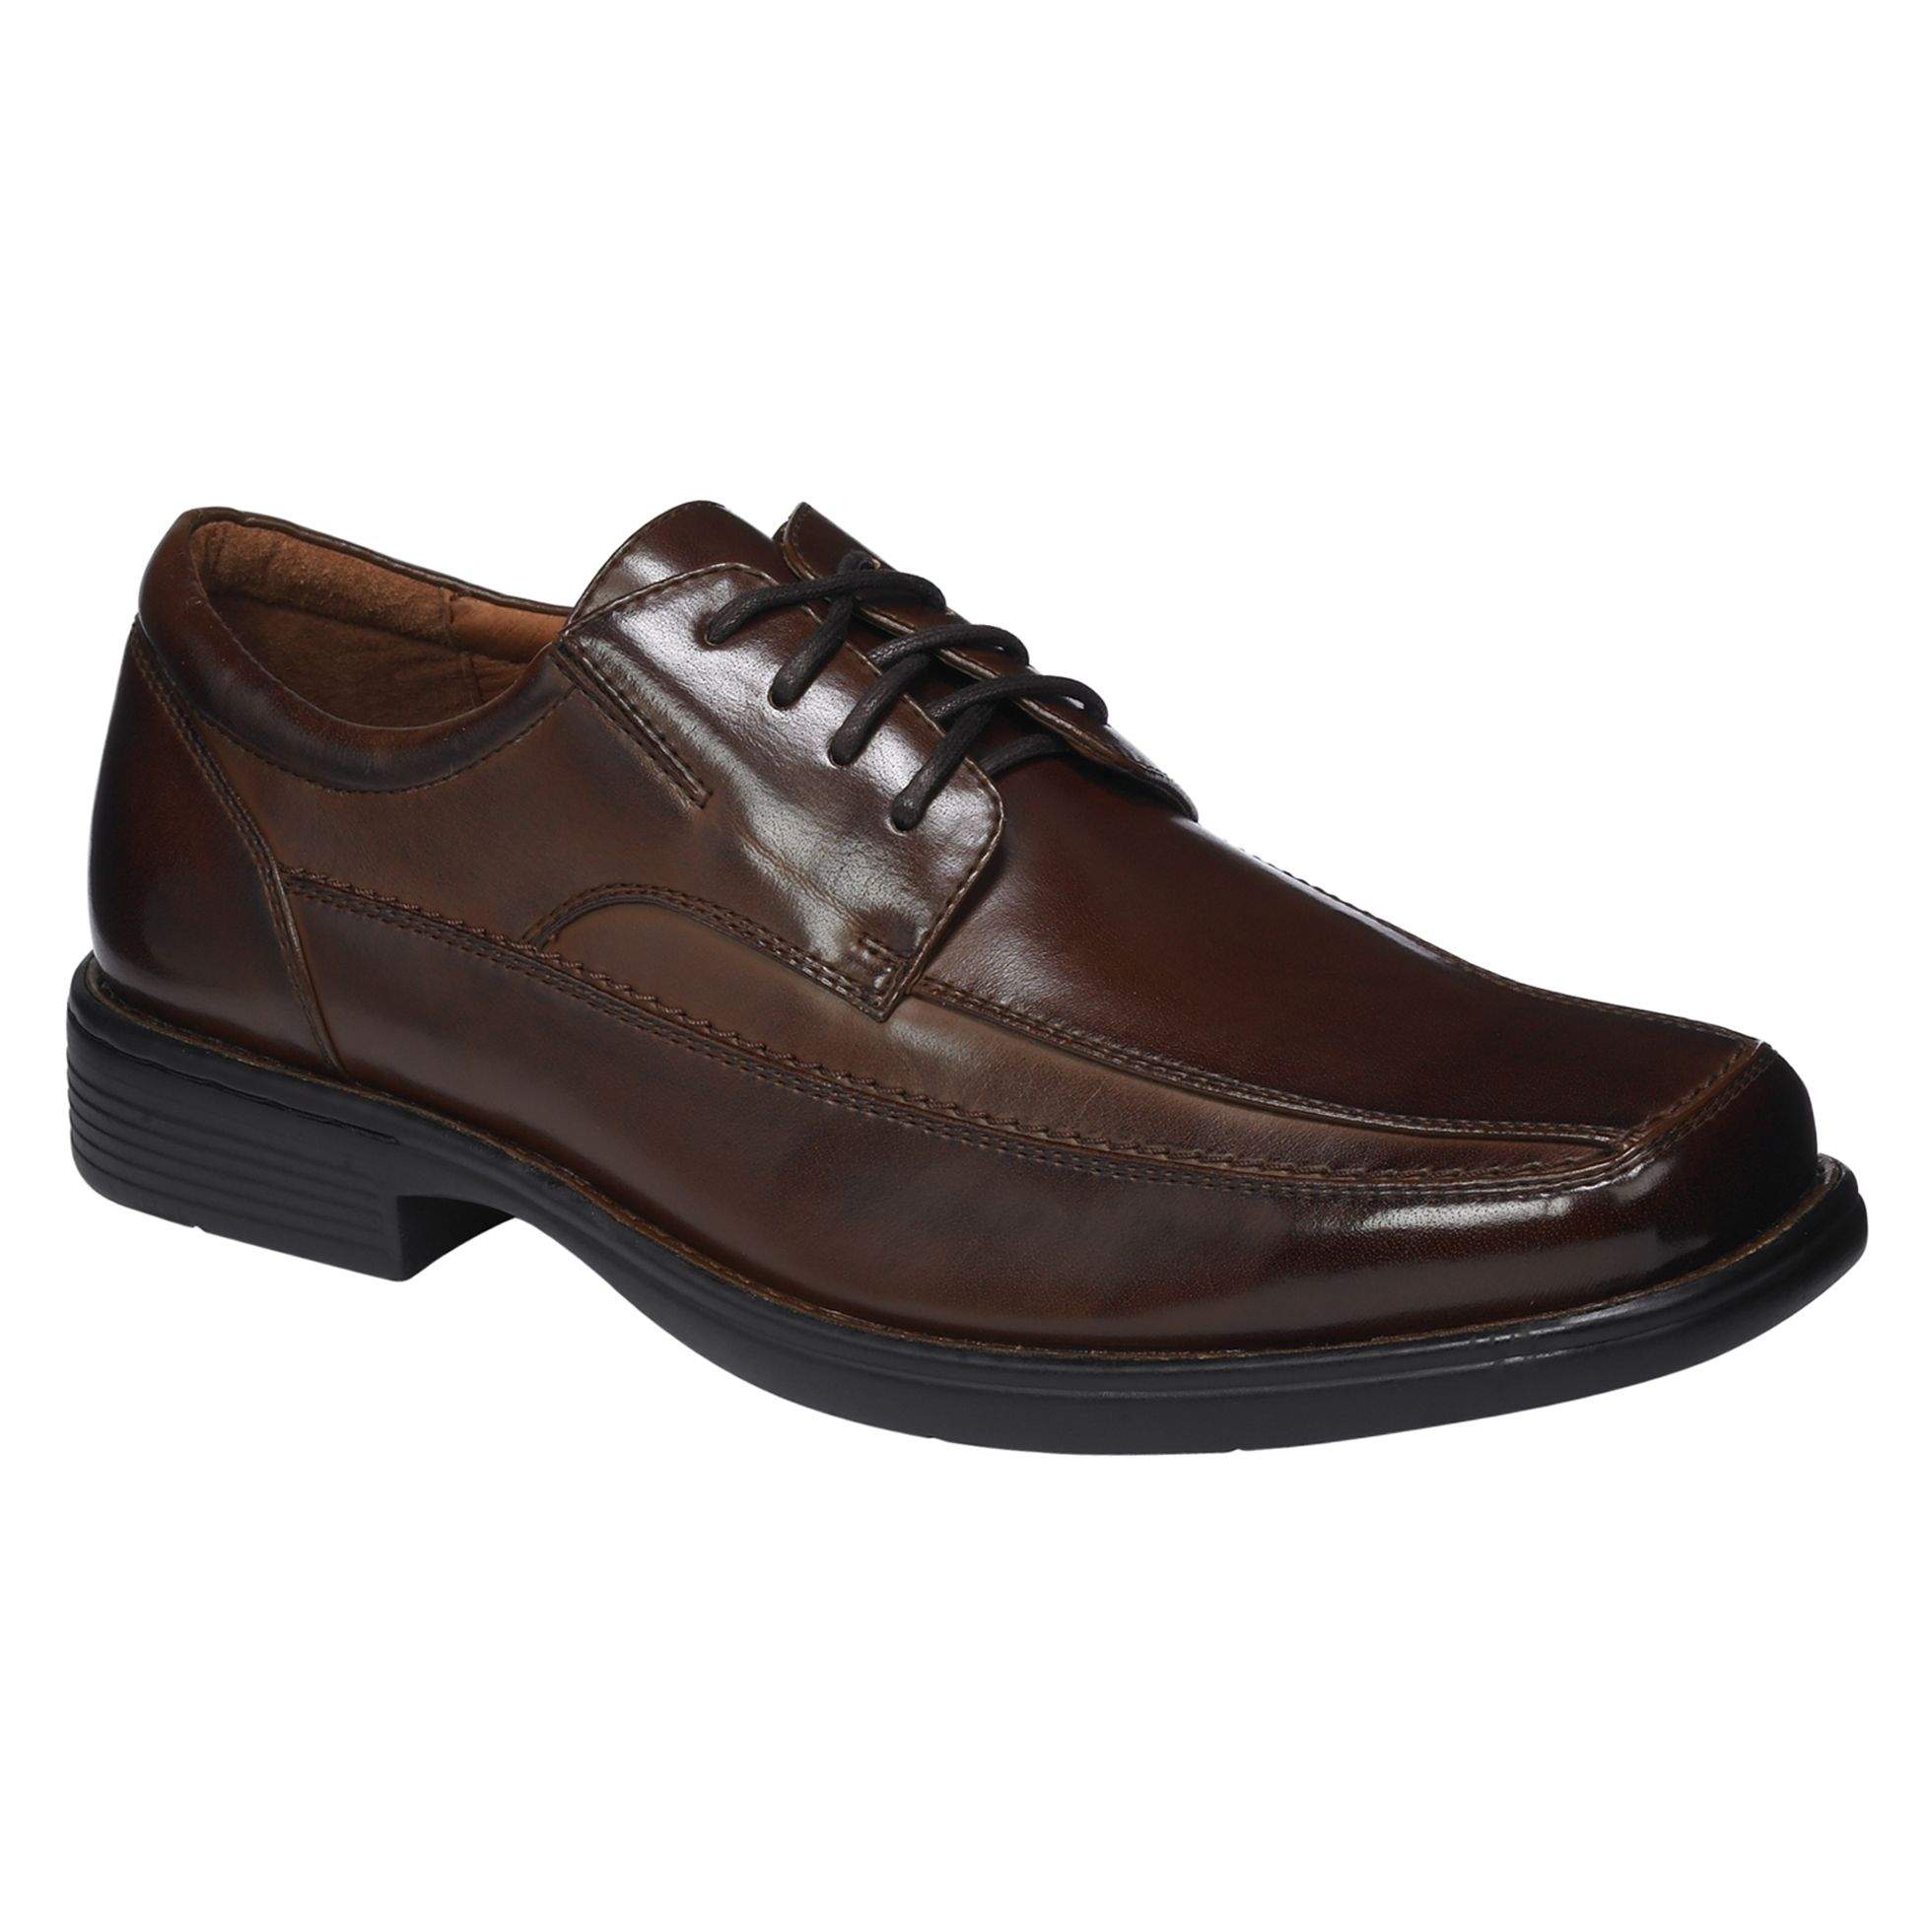 Thom McAn  Men's Kale Dress Oxford - Brown